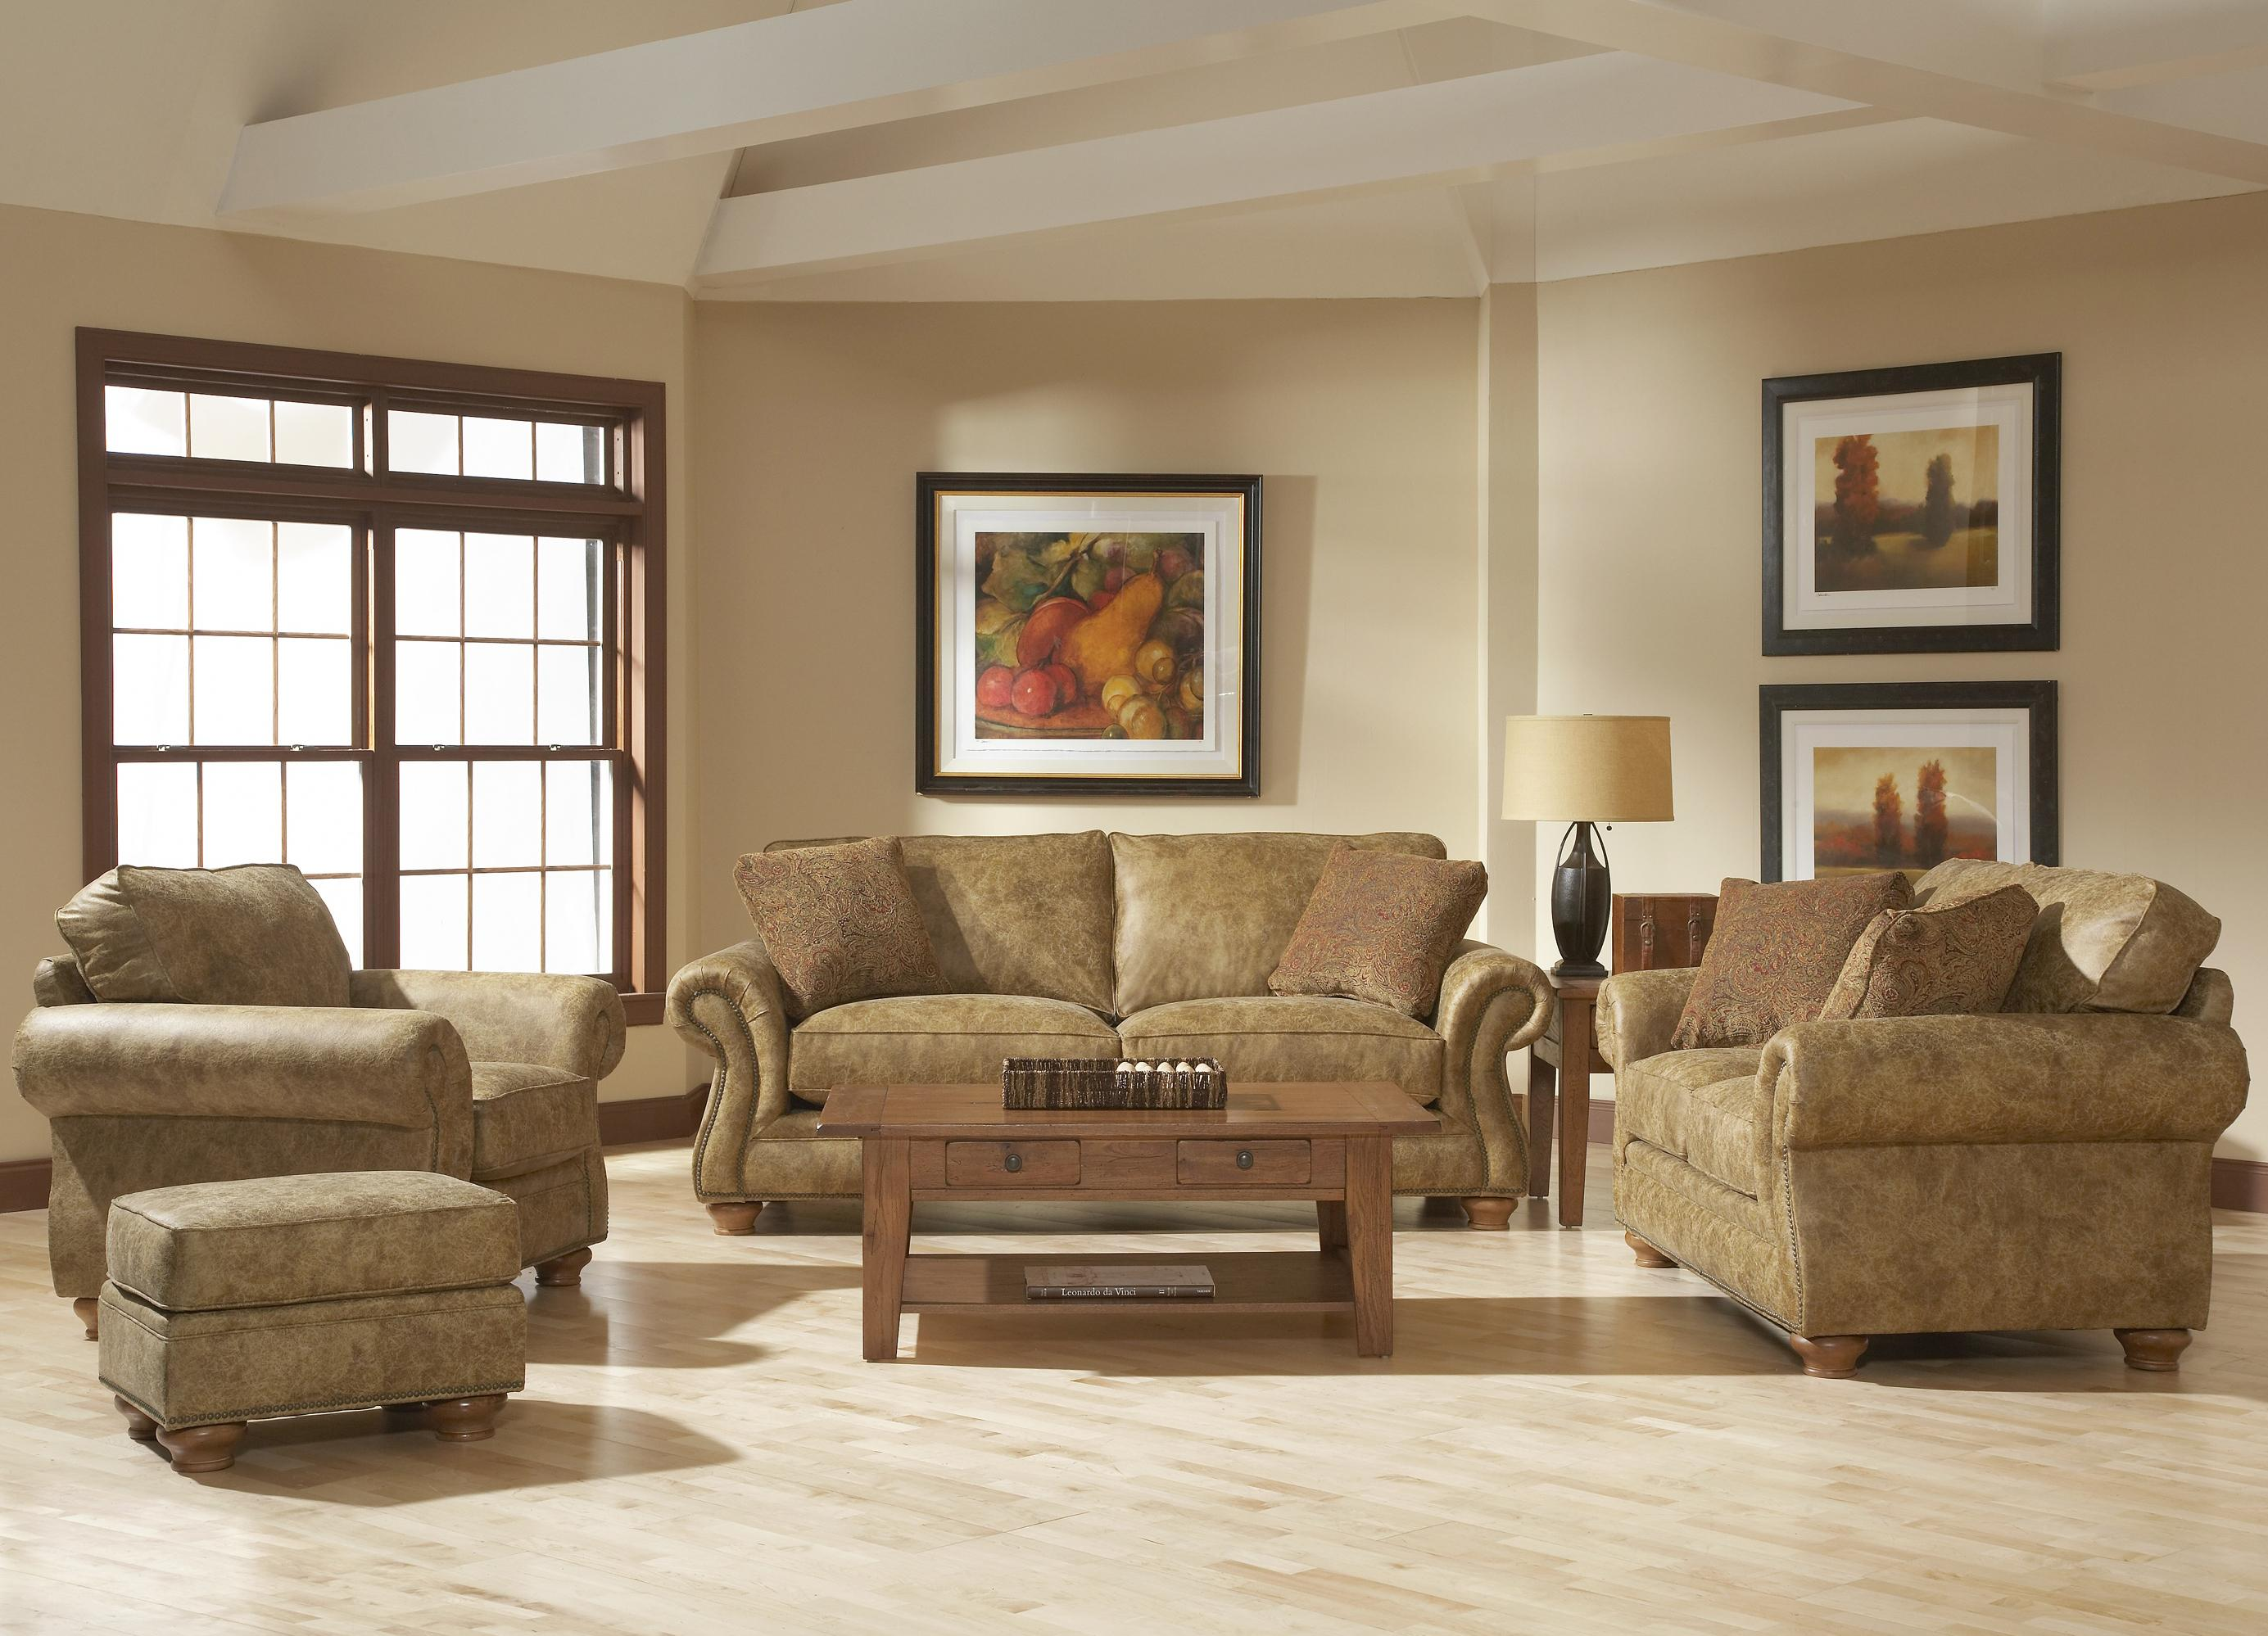 Broyhill Furniture Laramie 2 Piece Corner Sectional Sofa Wayside